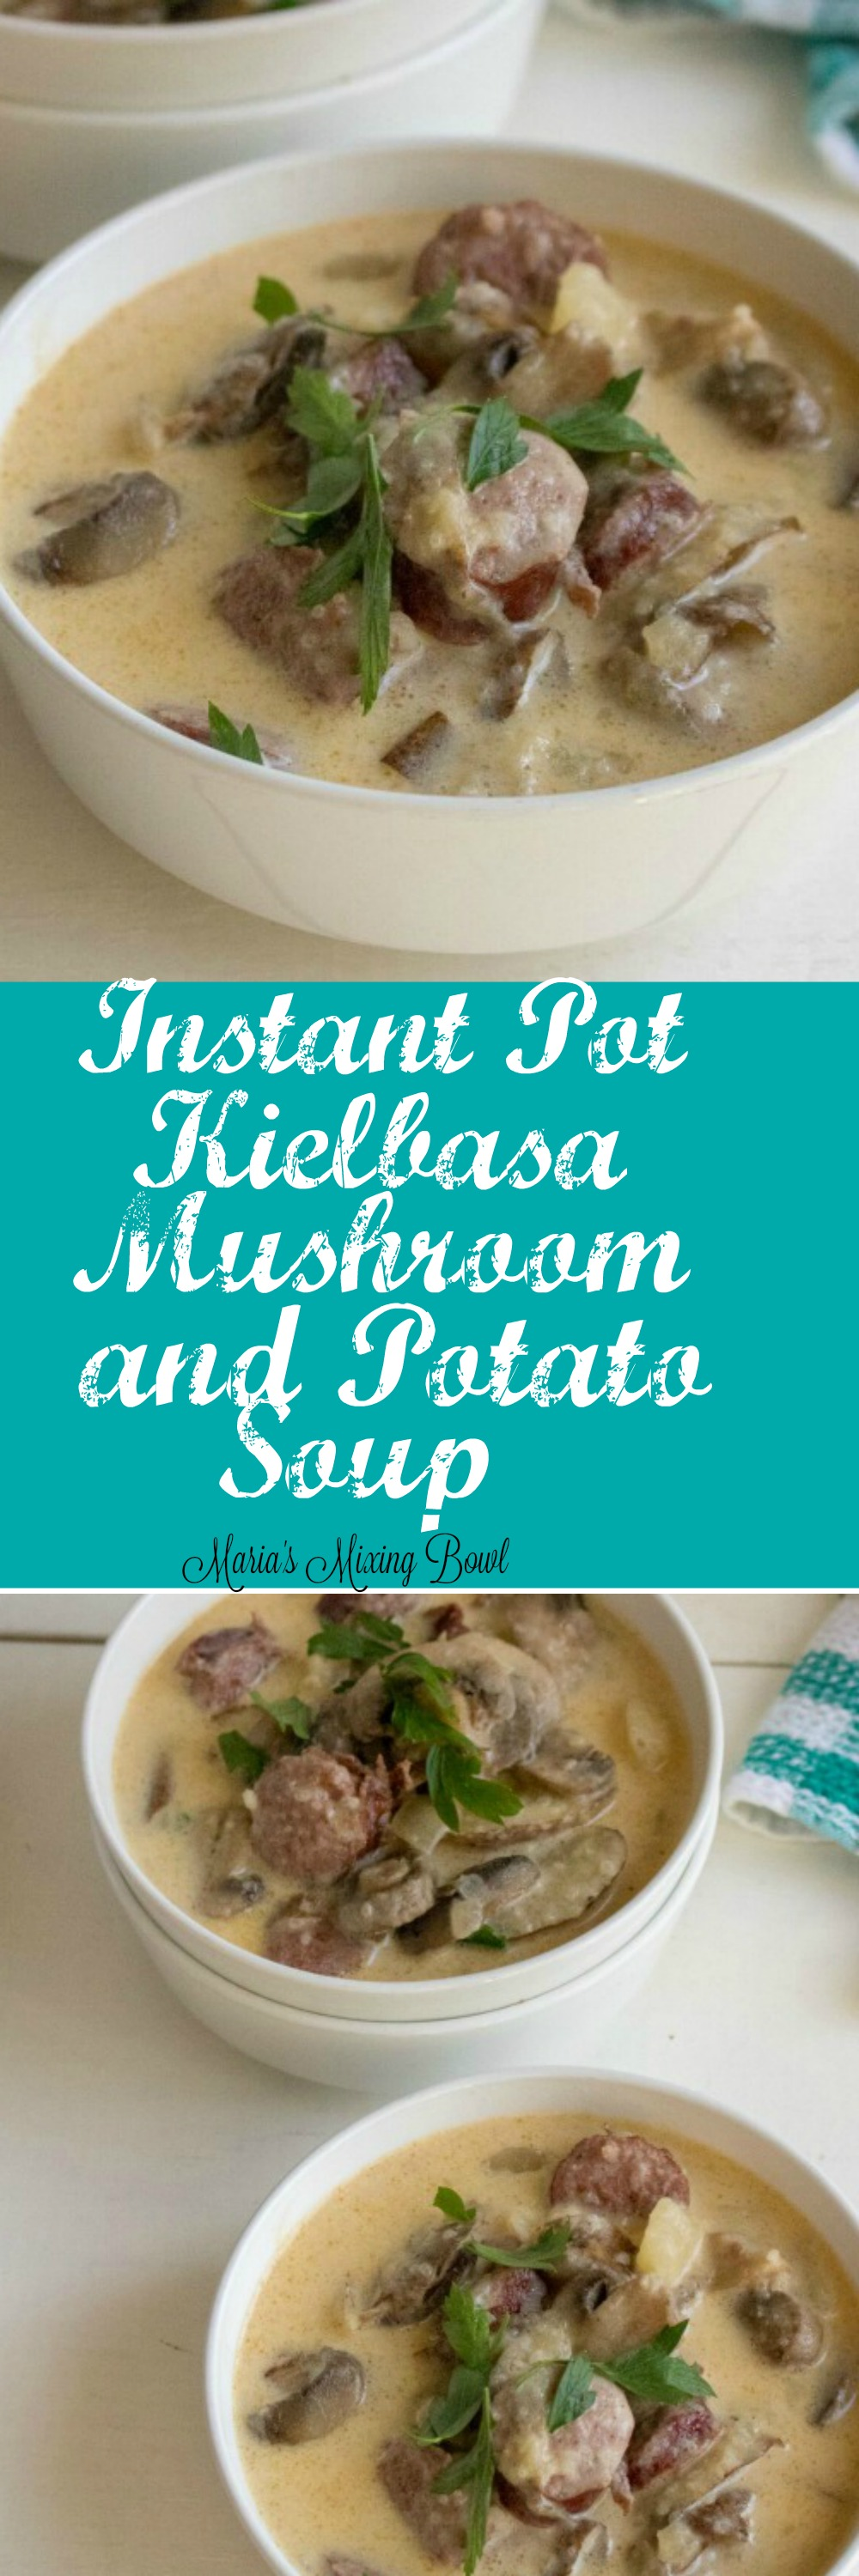 Instant Pot Kielbasa Mushroom and Potato Soup - This comforting and hearty soup is full of amazing flavor. It has become one of our favorite soups any day of the year!